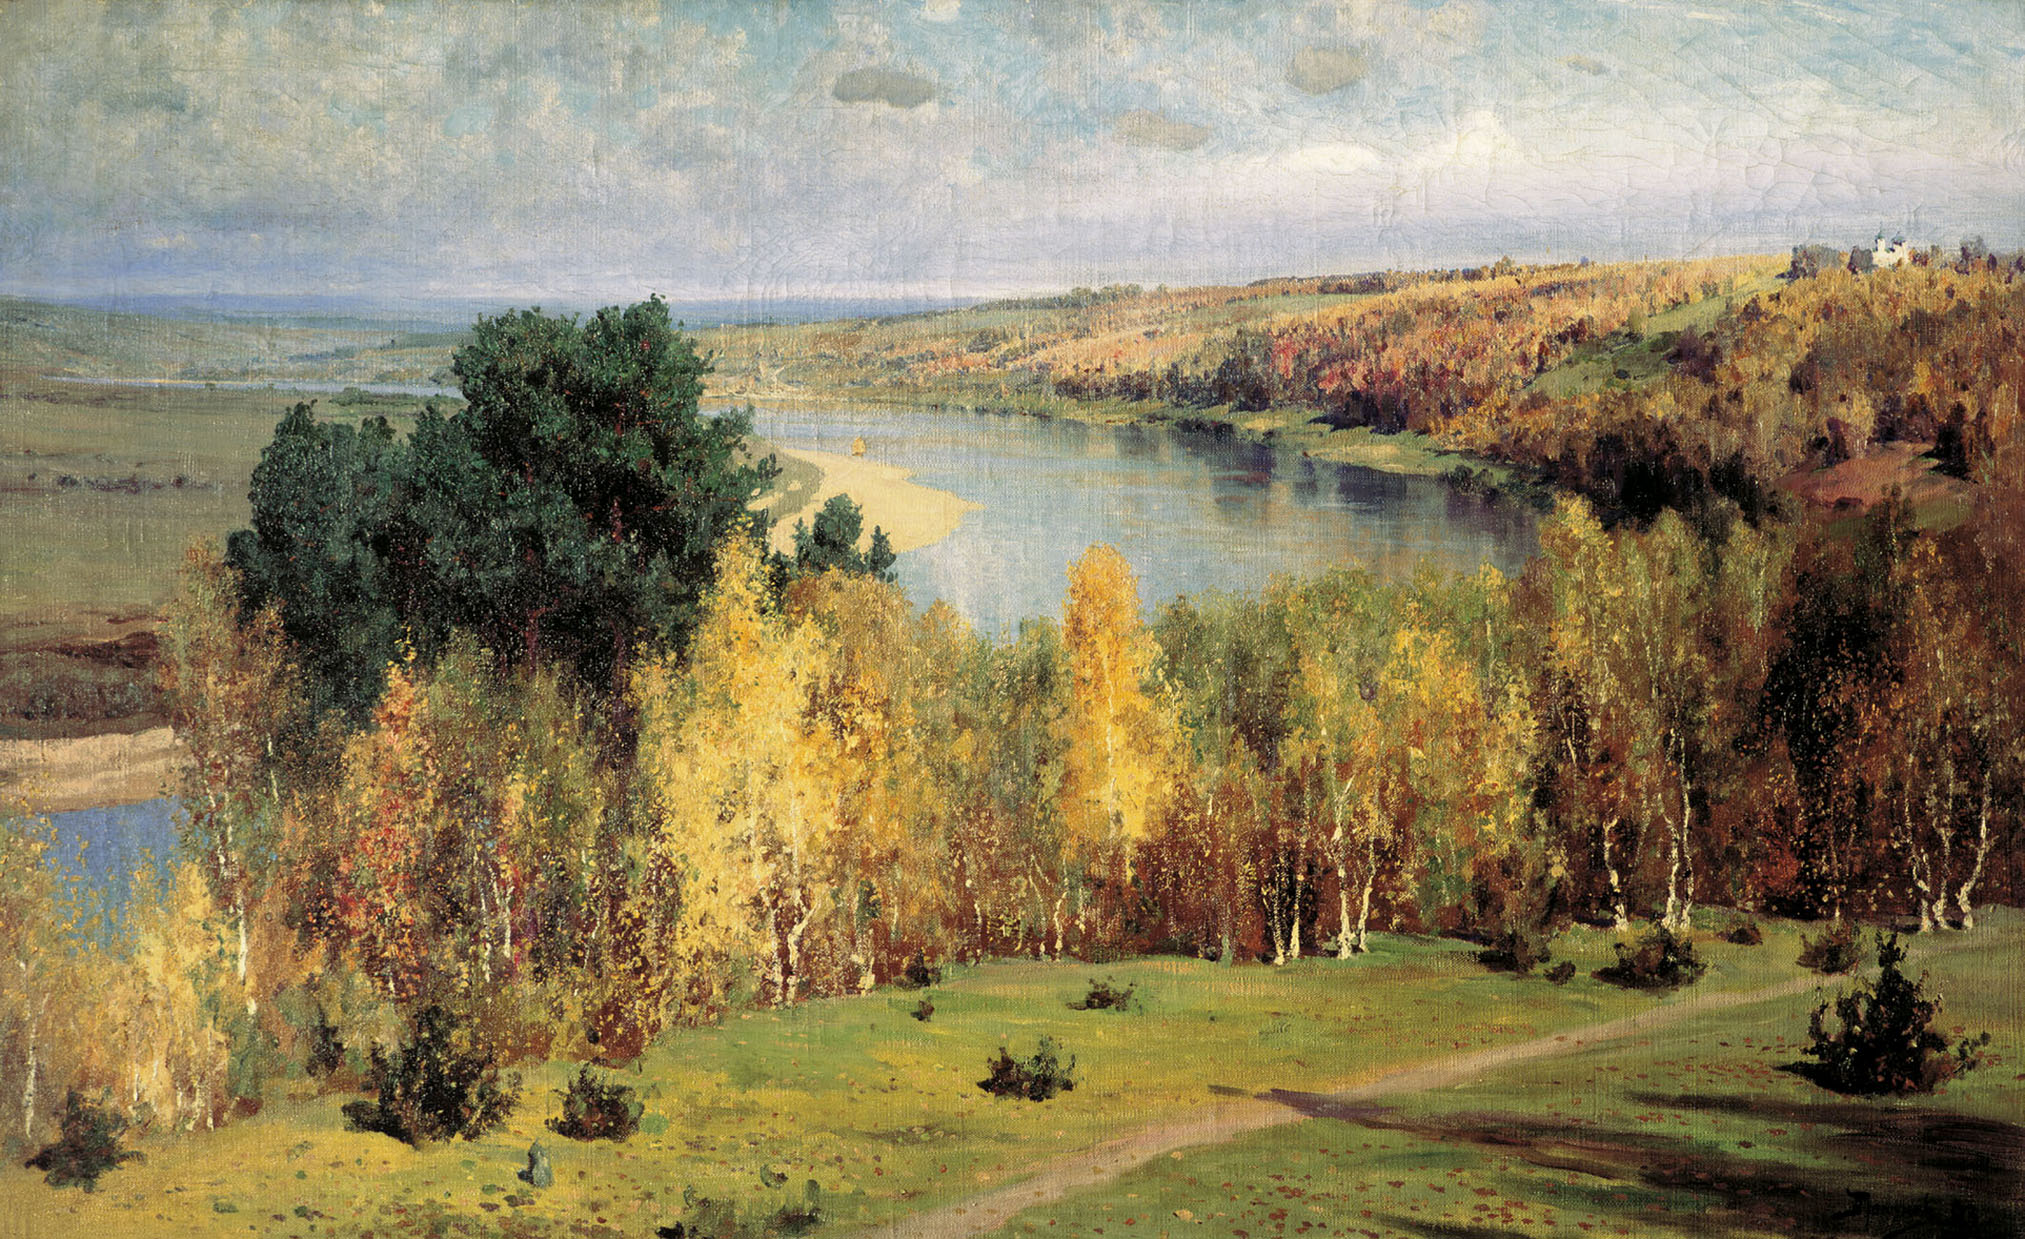 Vasily Dmitrievich Polenov (1844—1927)  Golden Autumn, 1893  Oil on canvas  Museum-Estate of V. Polenov, Tula region, Russia